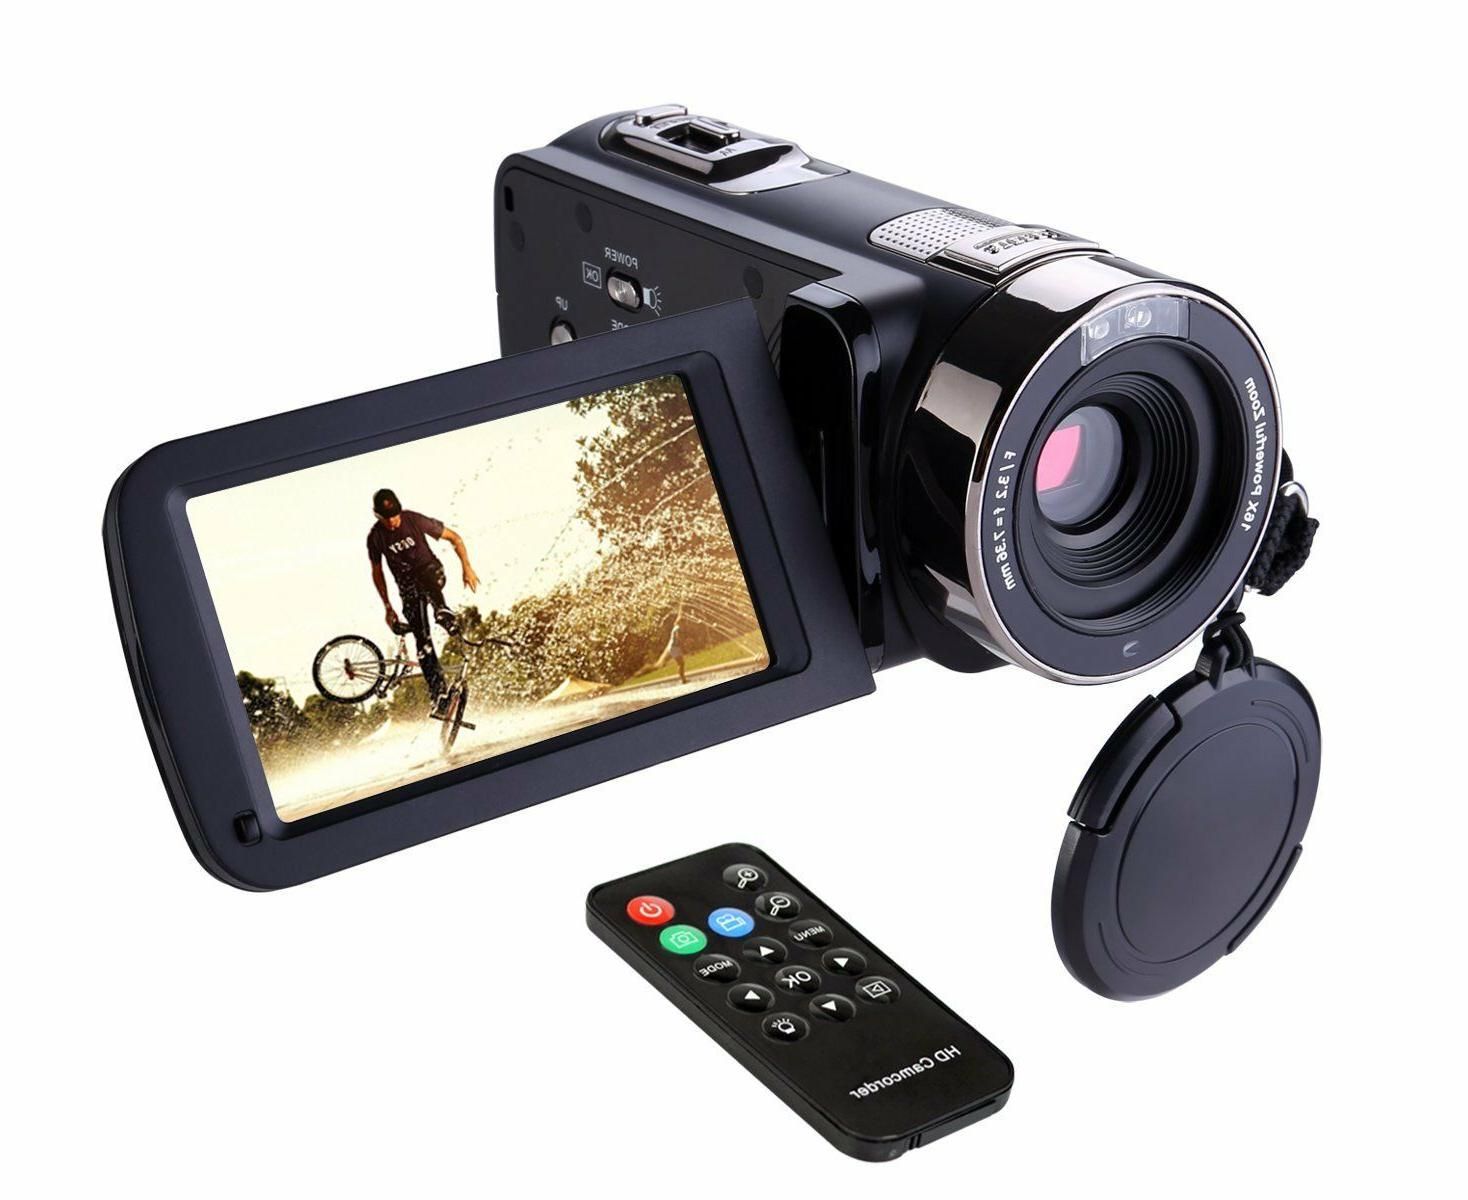 Remote Control Camcorder FHD Infrared Night Vision 1080p 24